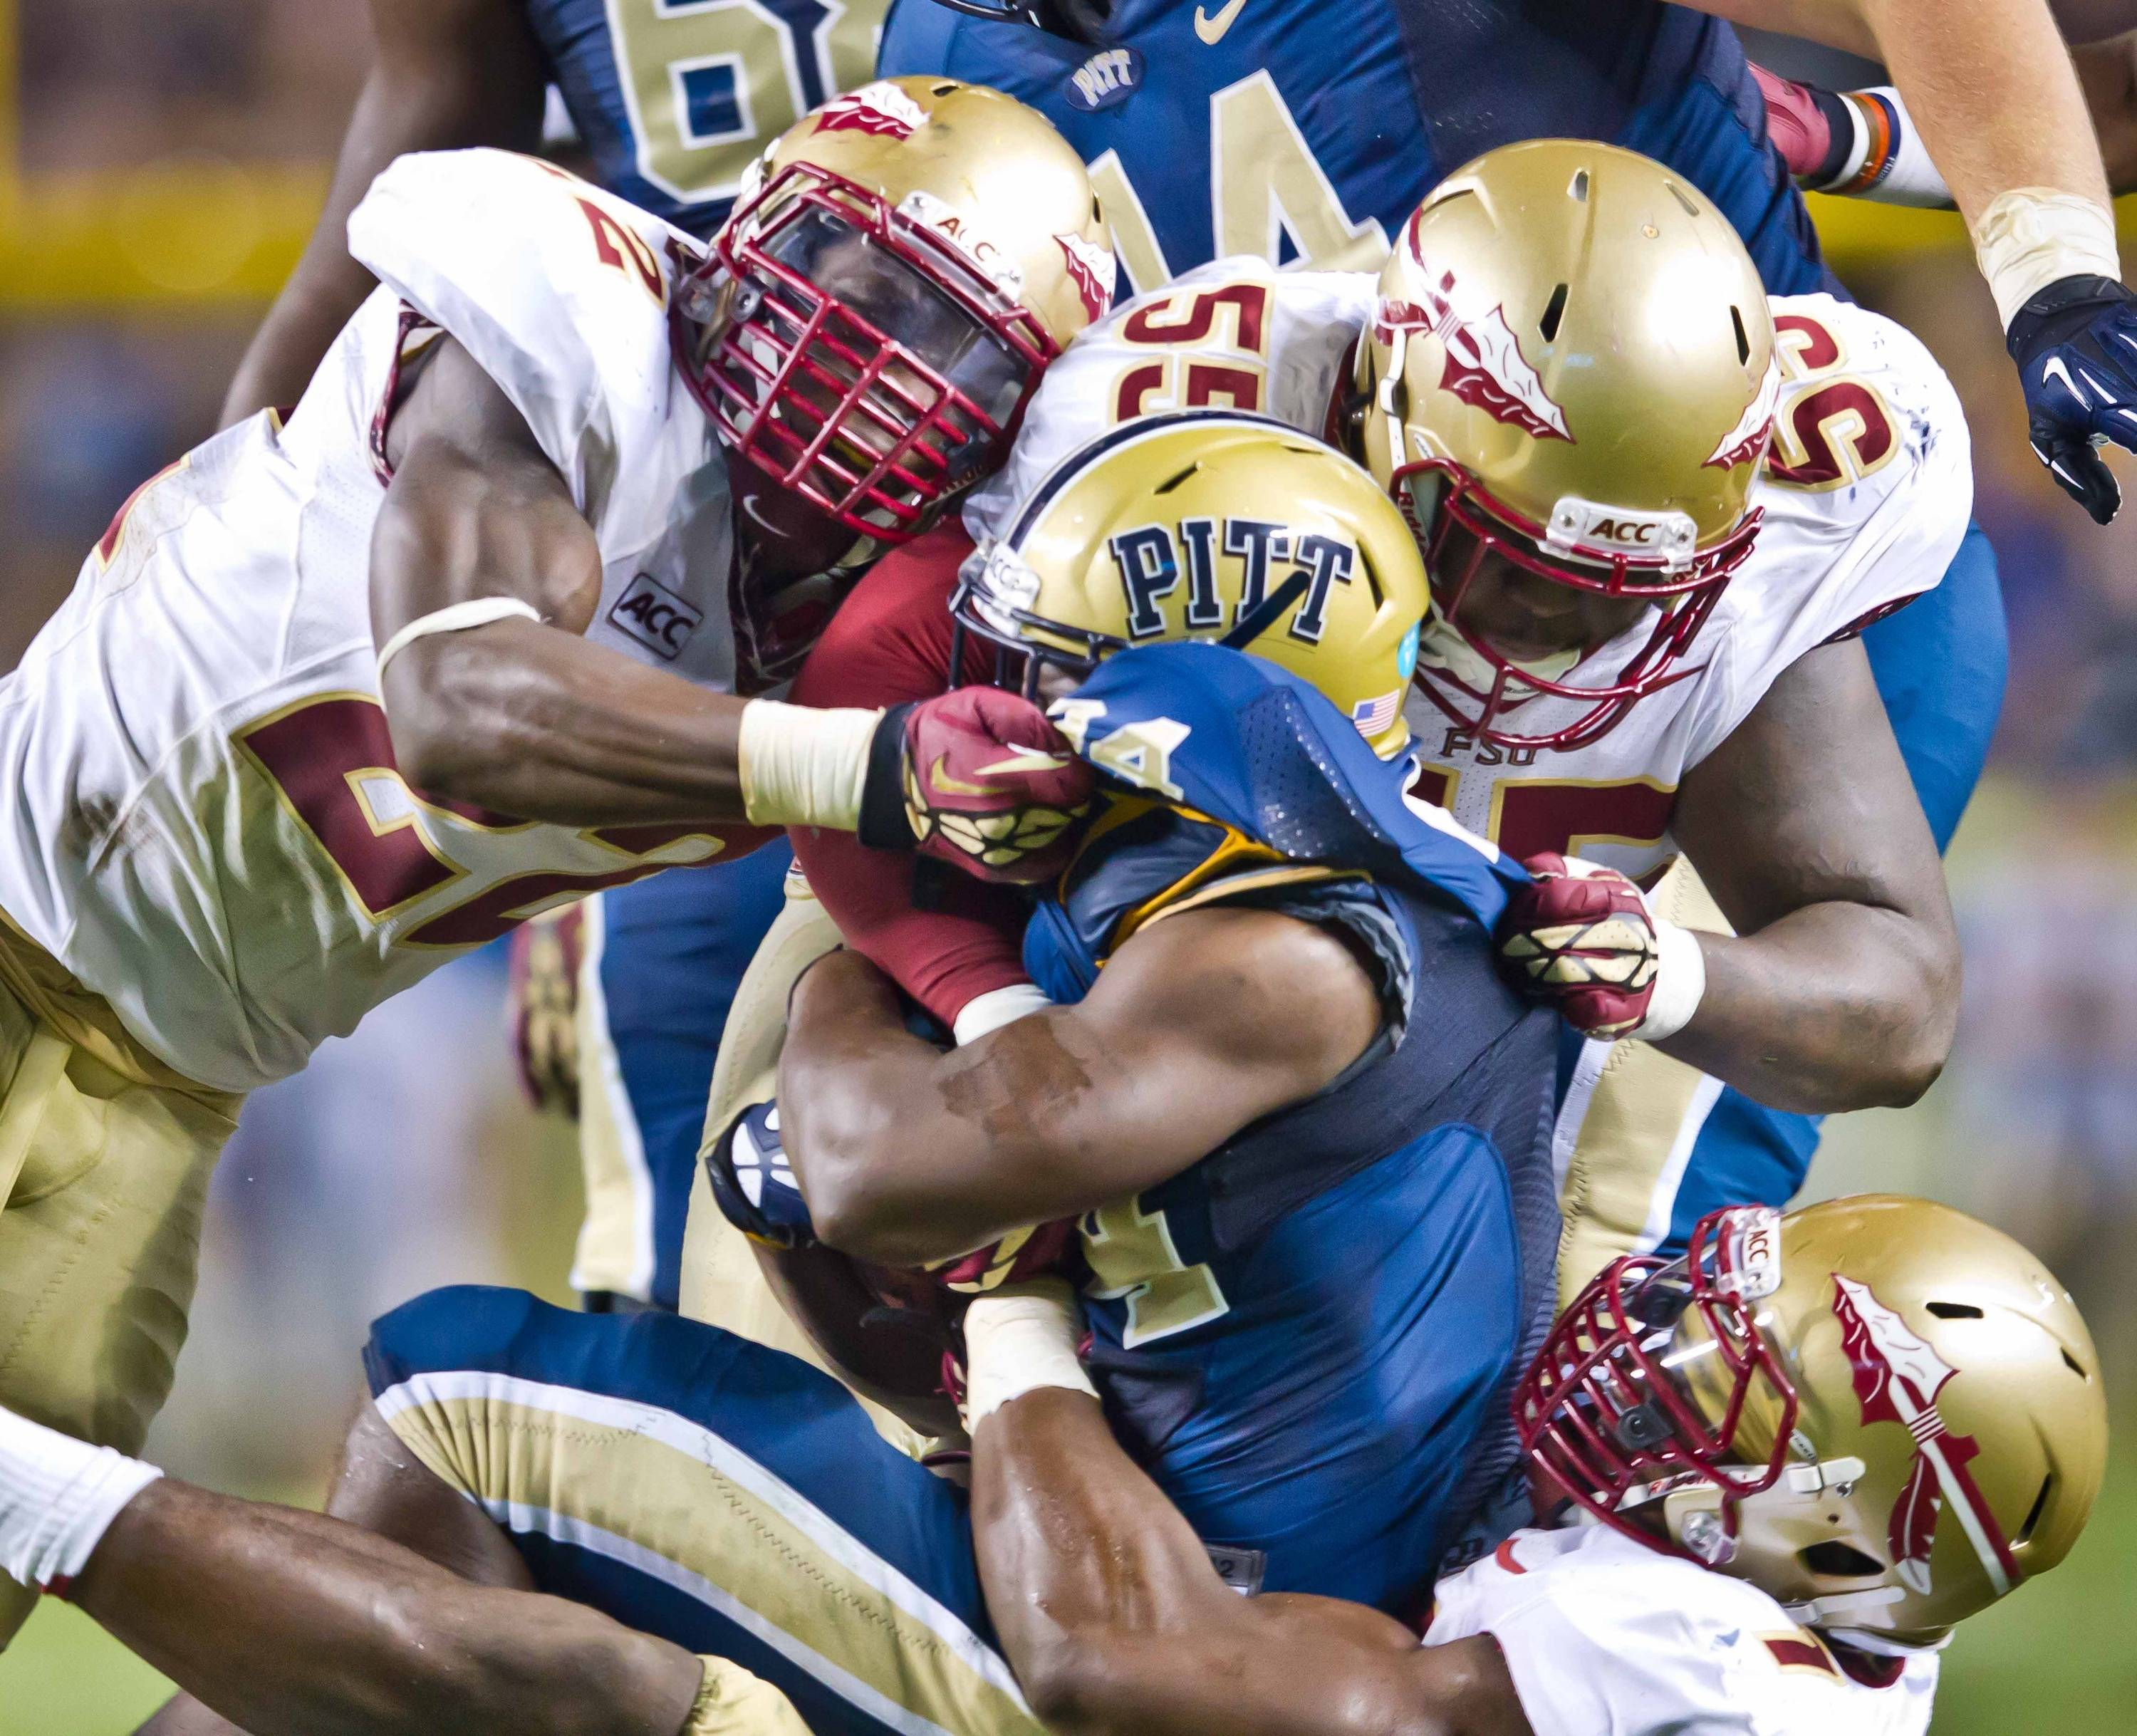 The FSU gang tackles a Panther runner.